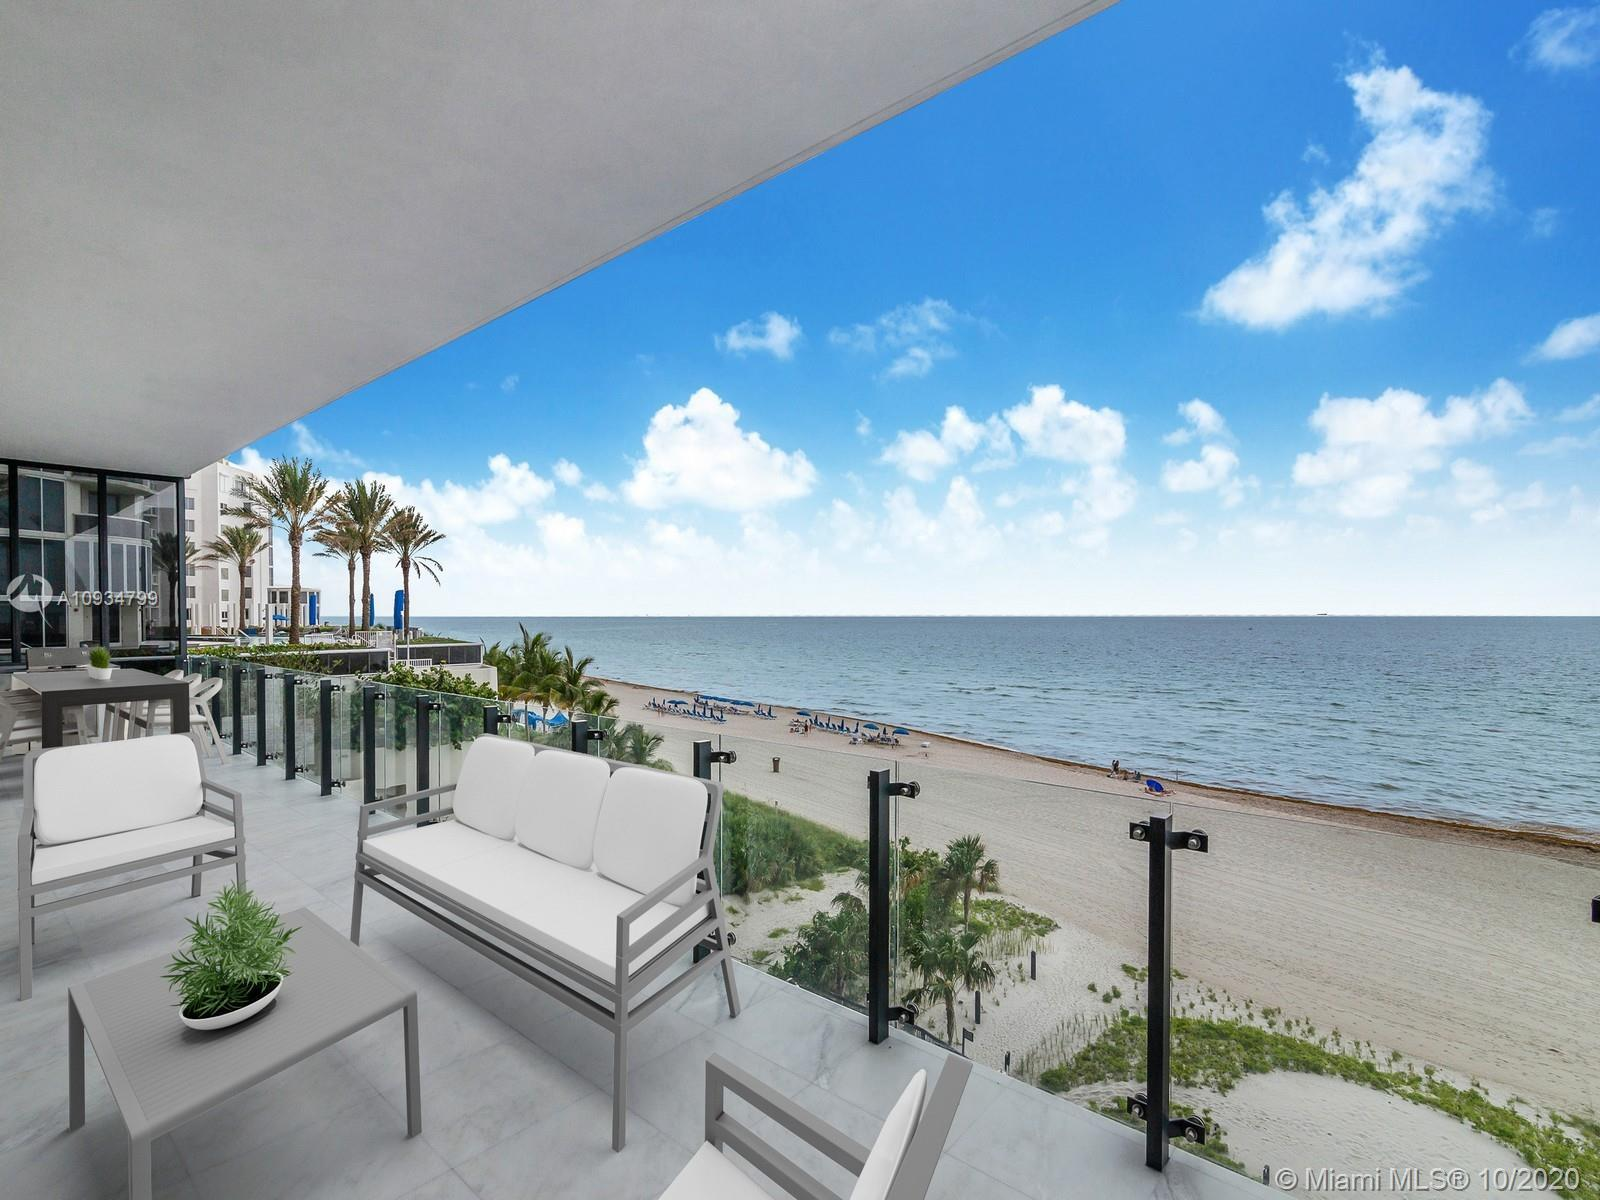 Fabulous ocean views at exclusive MUSE residence. Highlights include private ocean view, outdoor gri